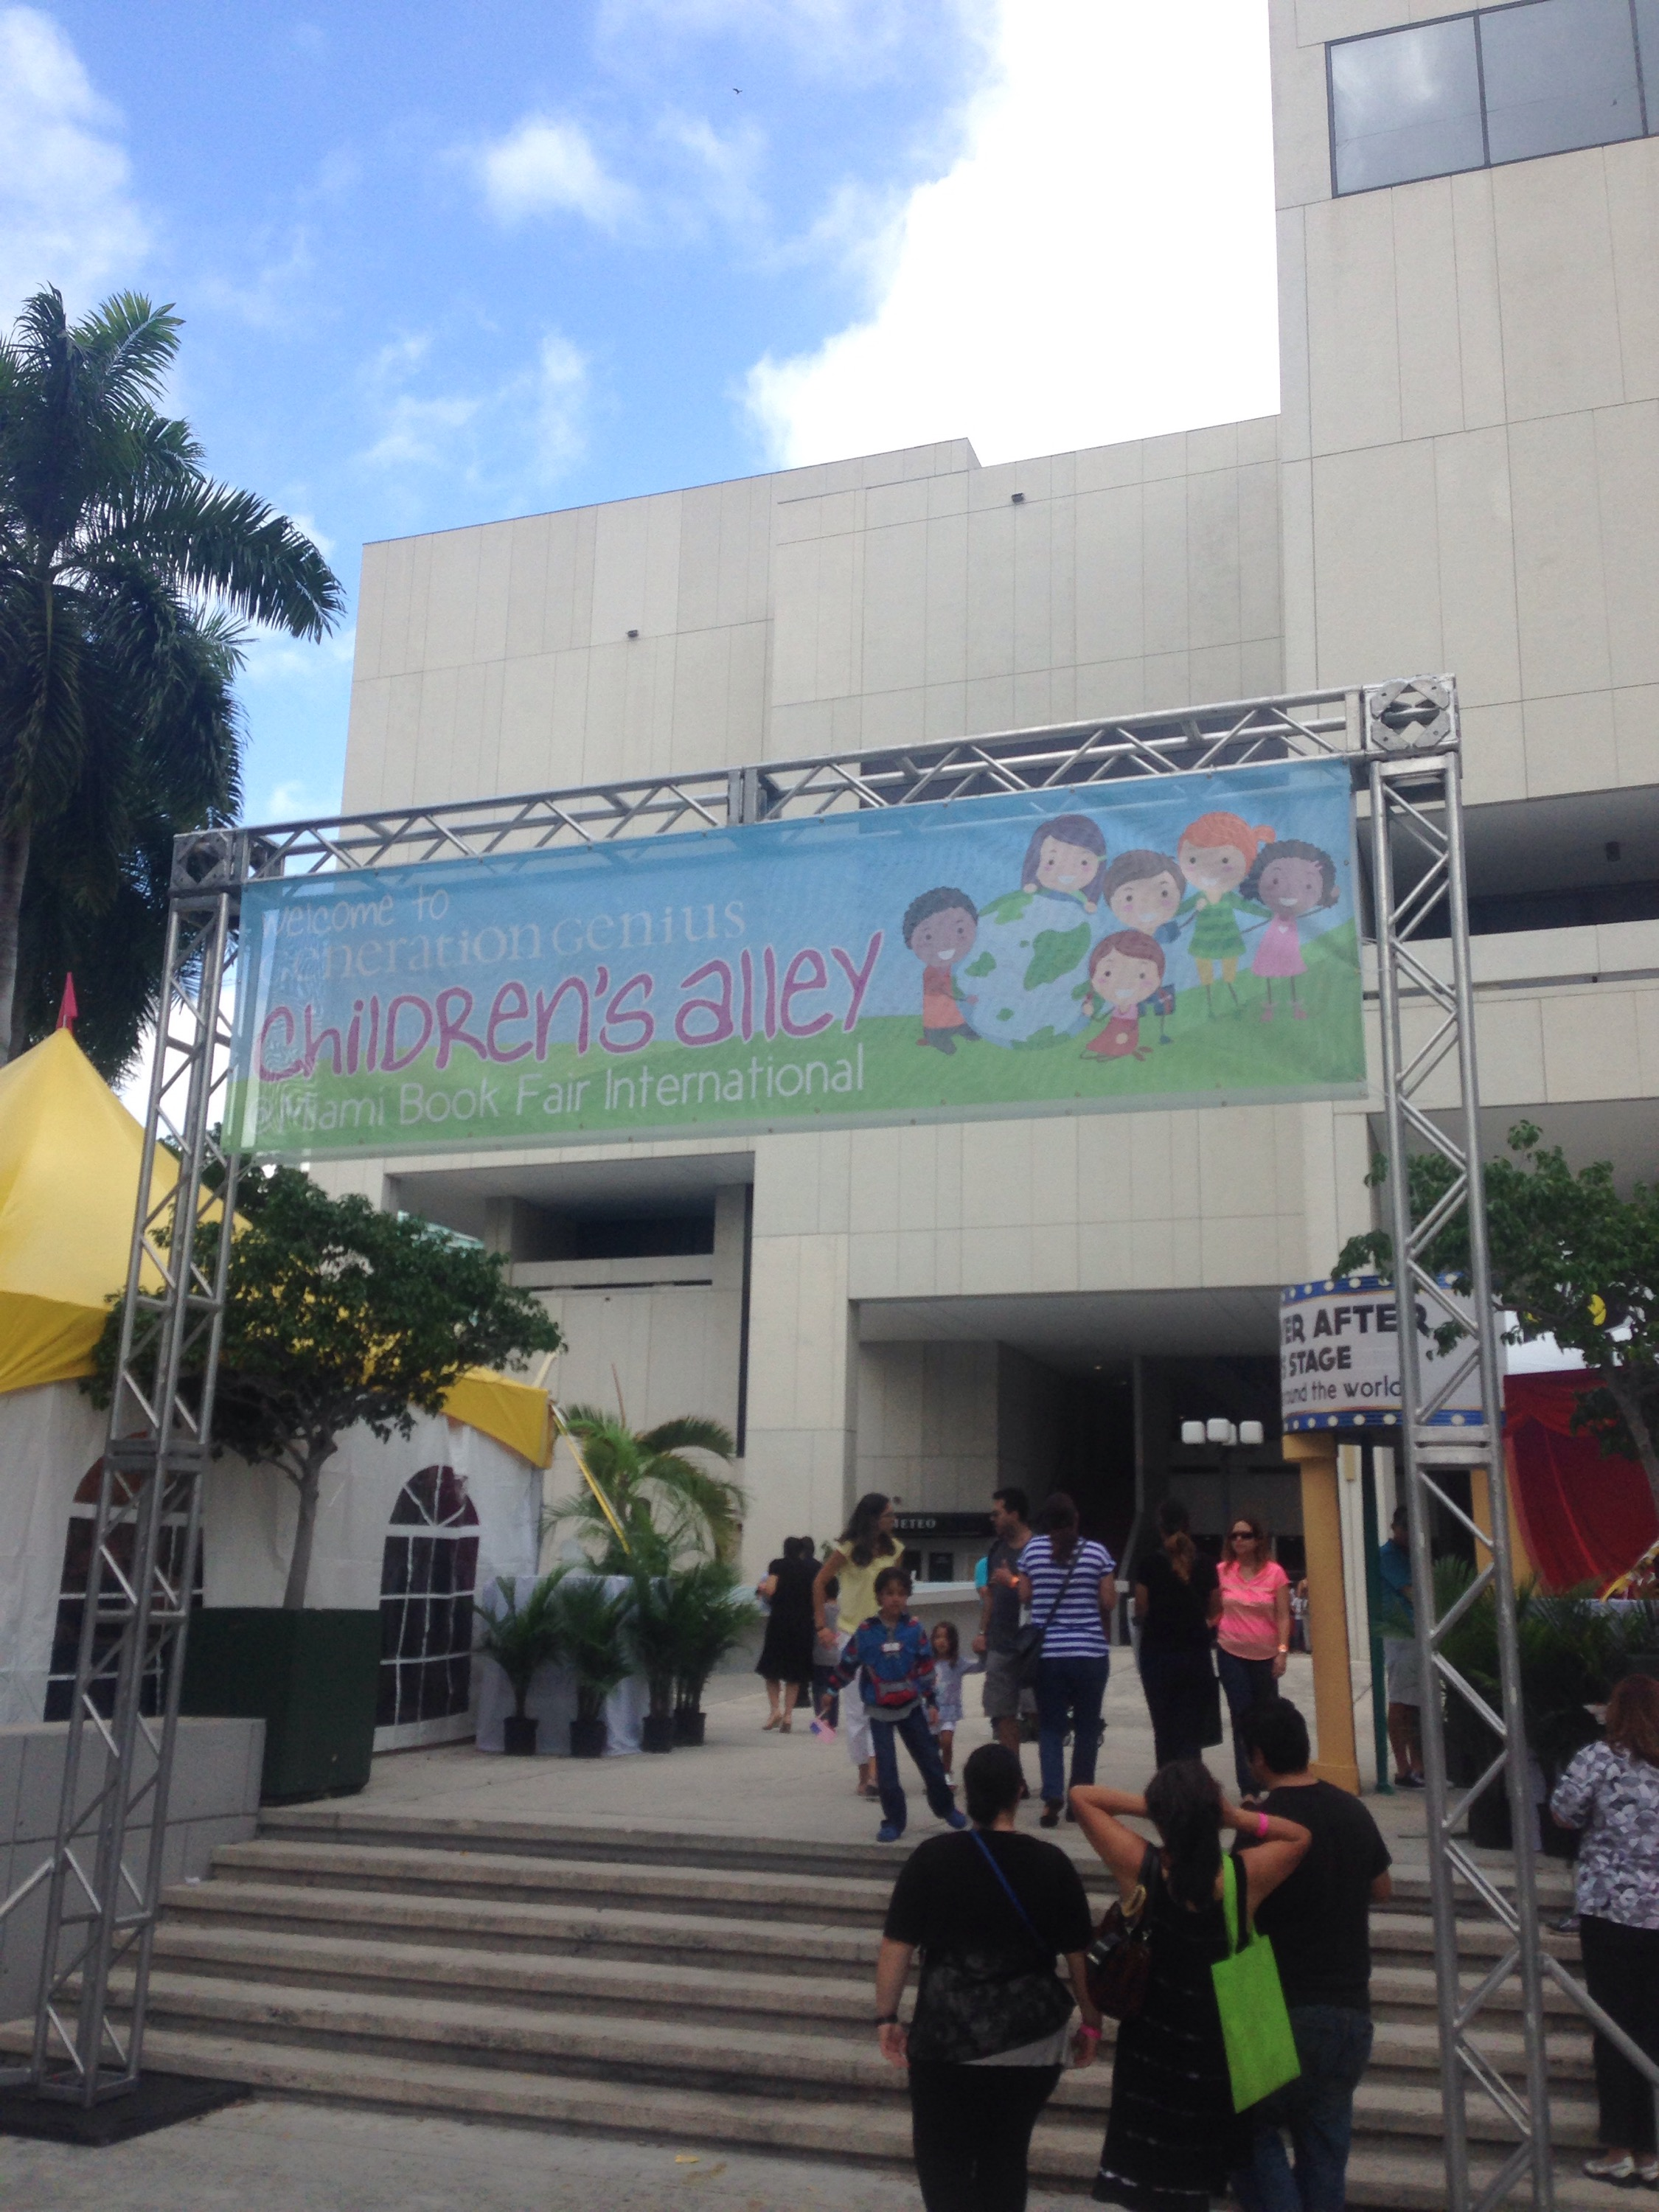 Entrance to the children's area of the book fair